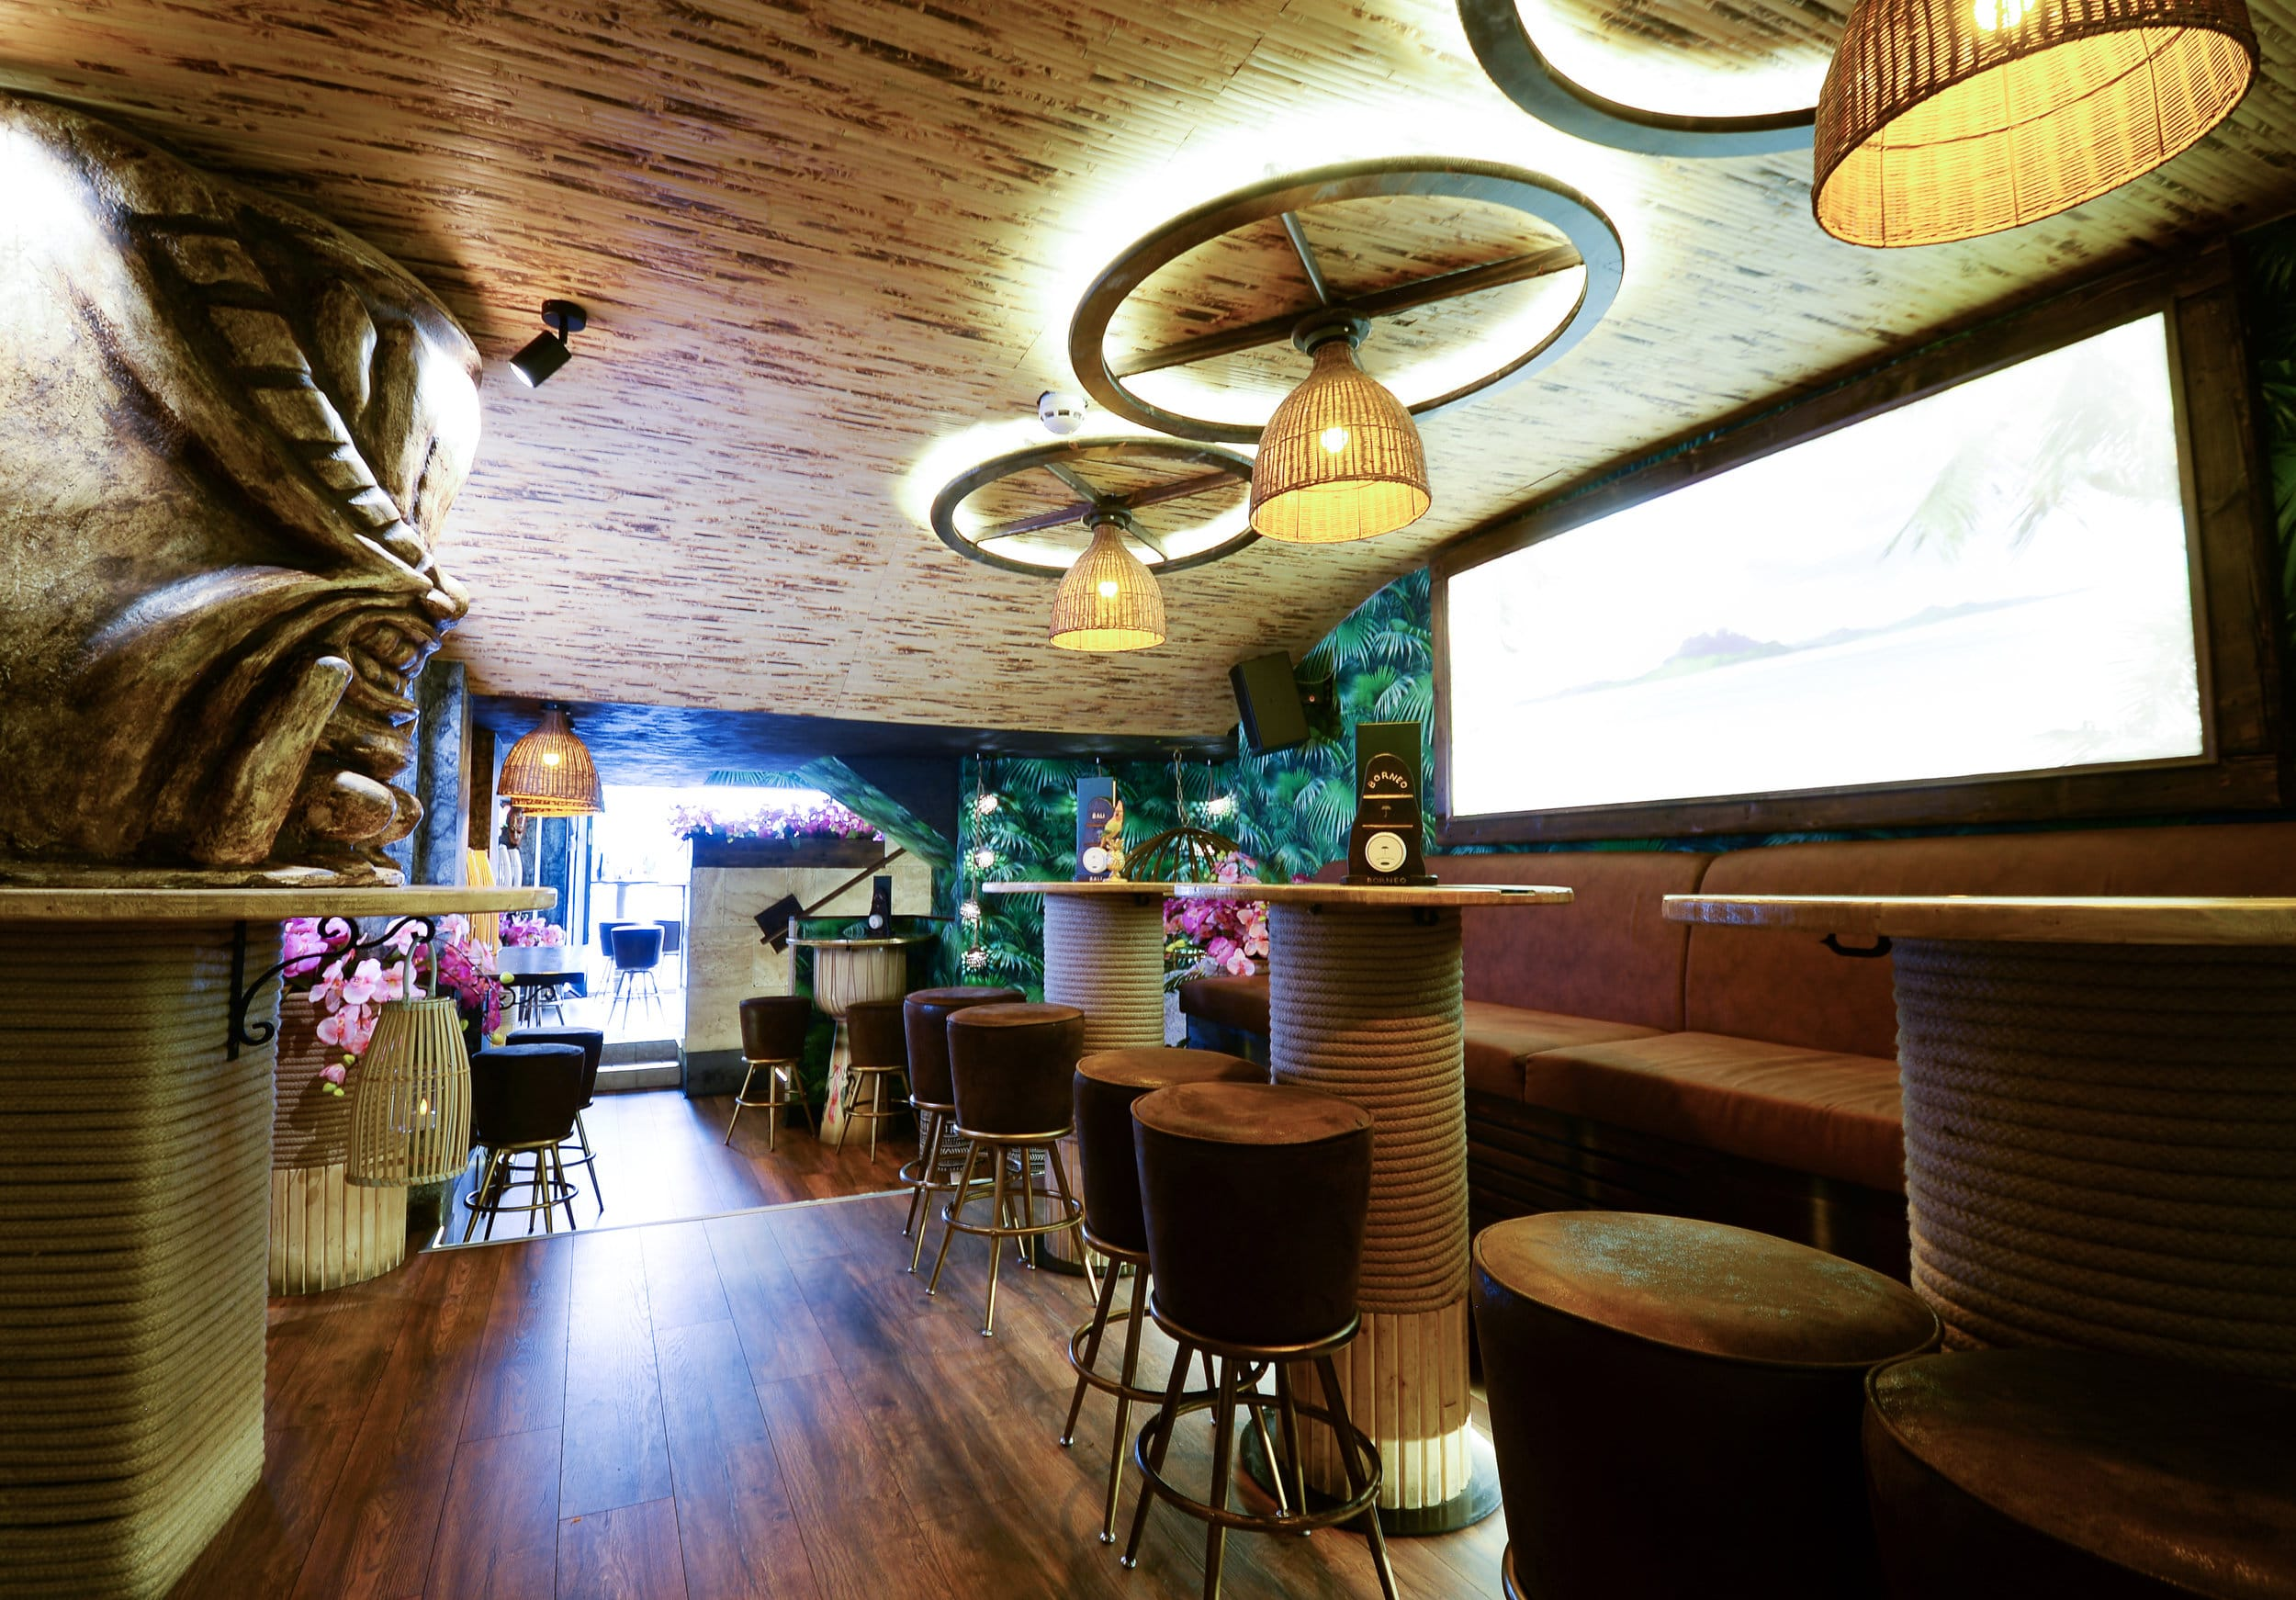 The inside of Laki Kane bar London - and underground tiki inspired cavern space with wooden carvings for pillars, hessian rope wrapped around the table stems and green palm tree fronds painted on the walls